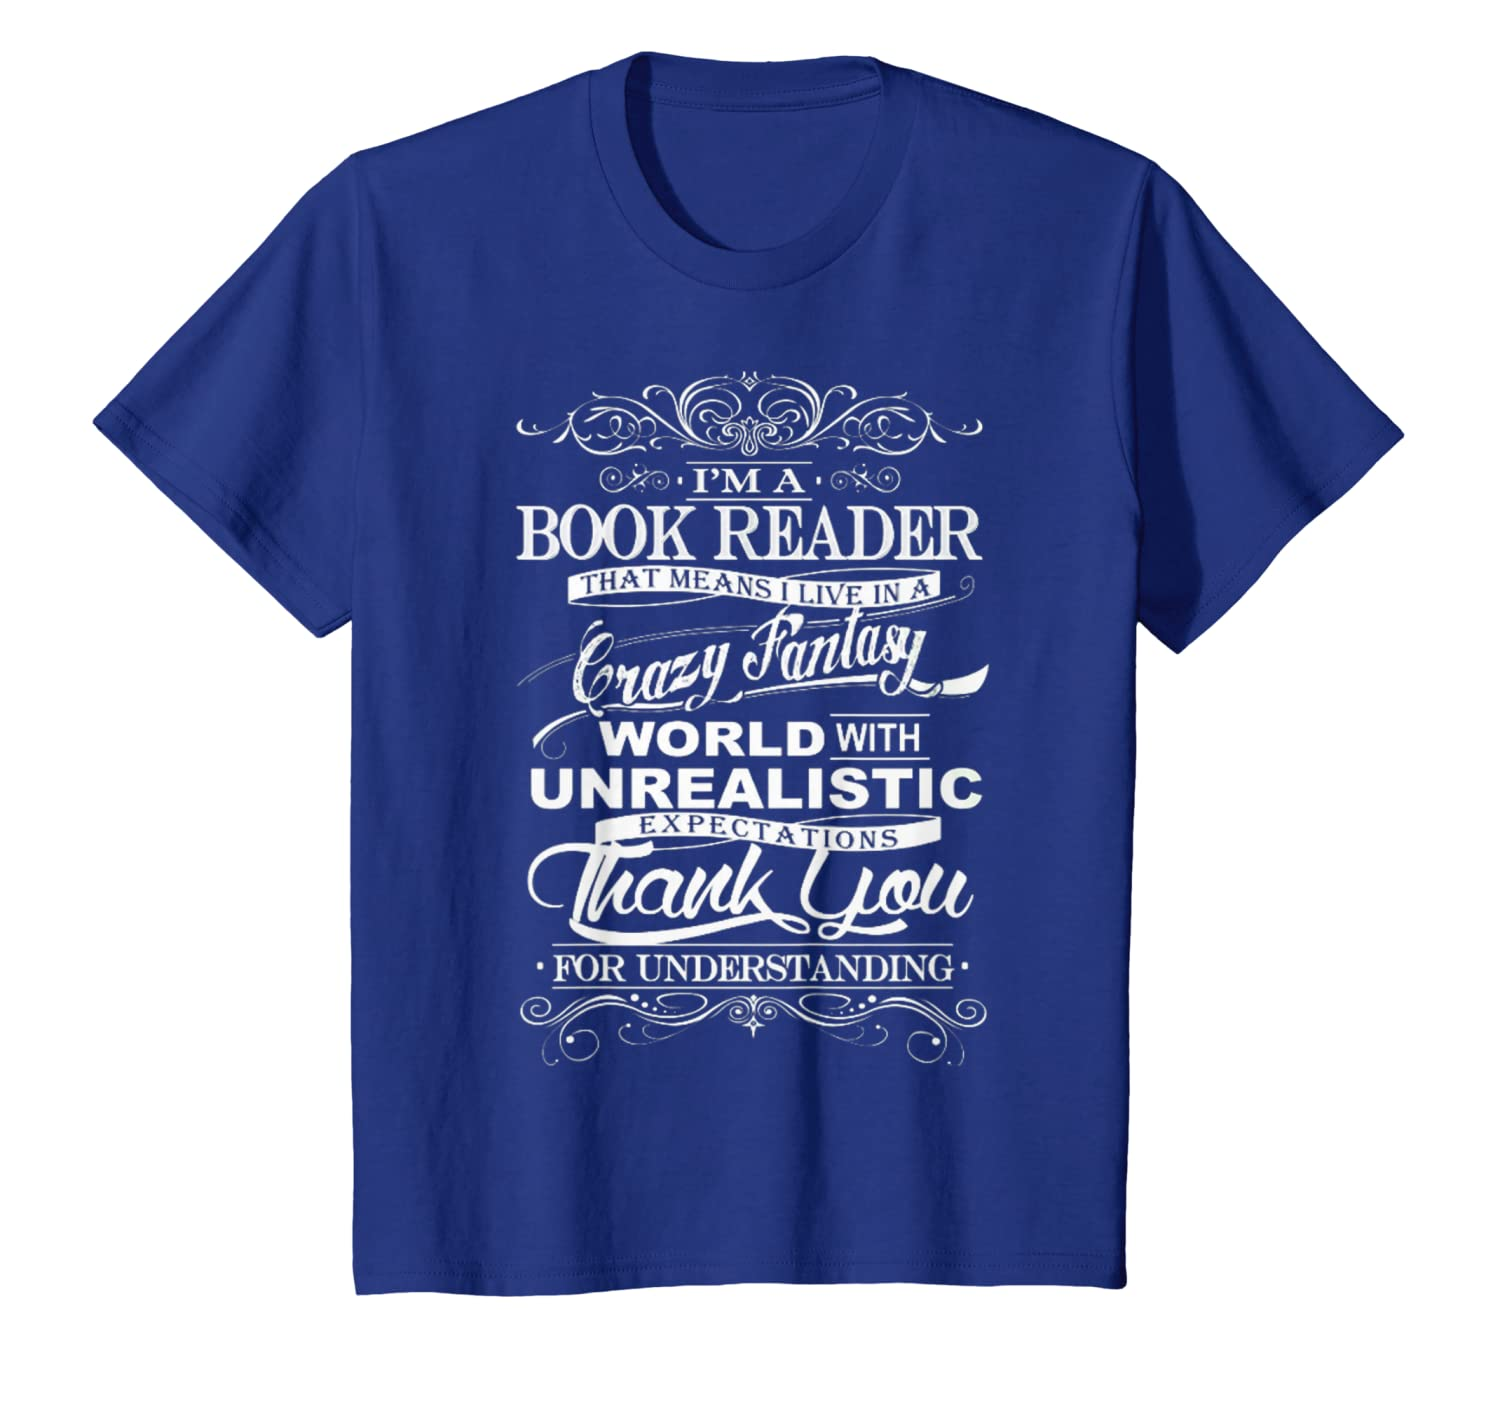 5e7ddc224f6b0 Book Reader Tshirt - I'm Book Reader Gift For Reading Fans